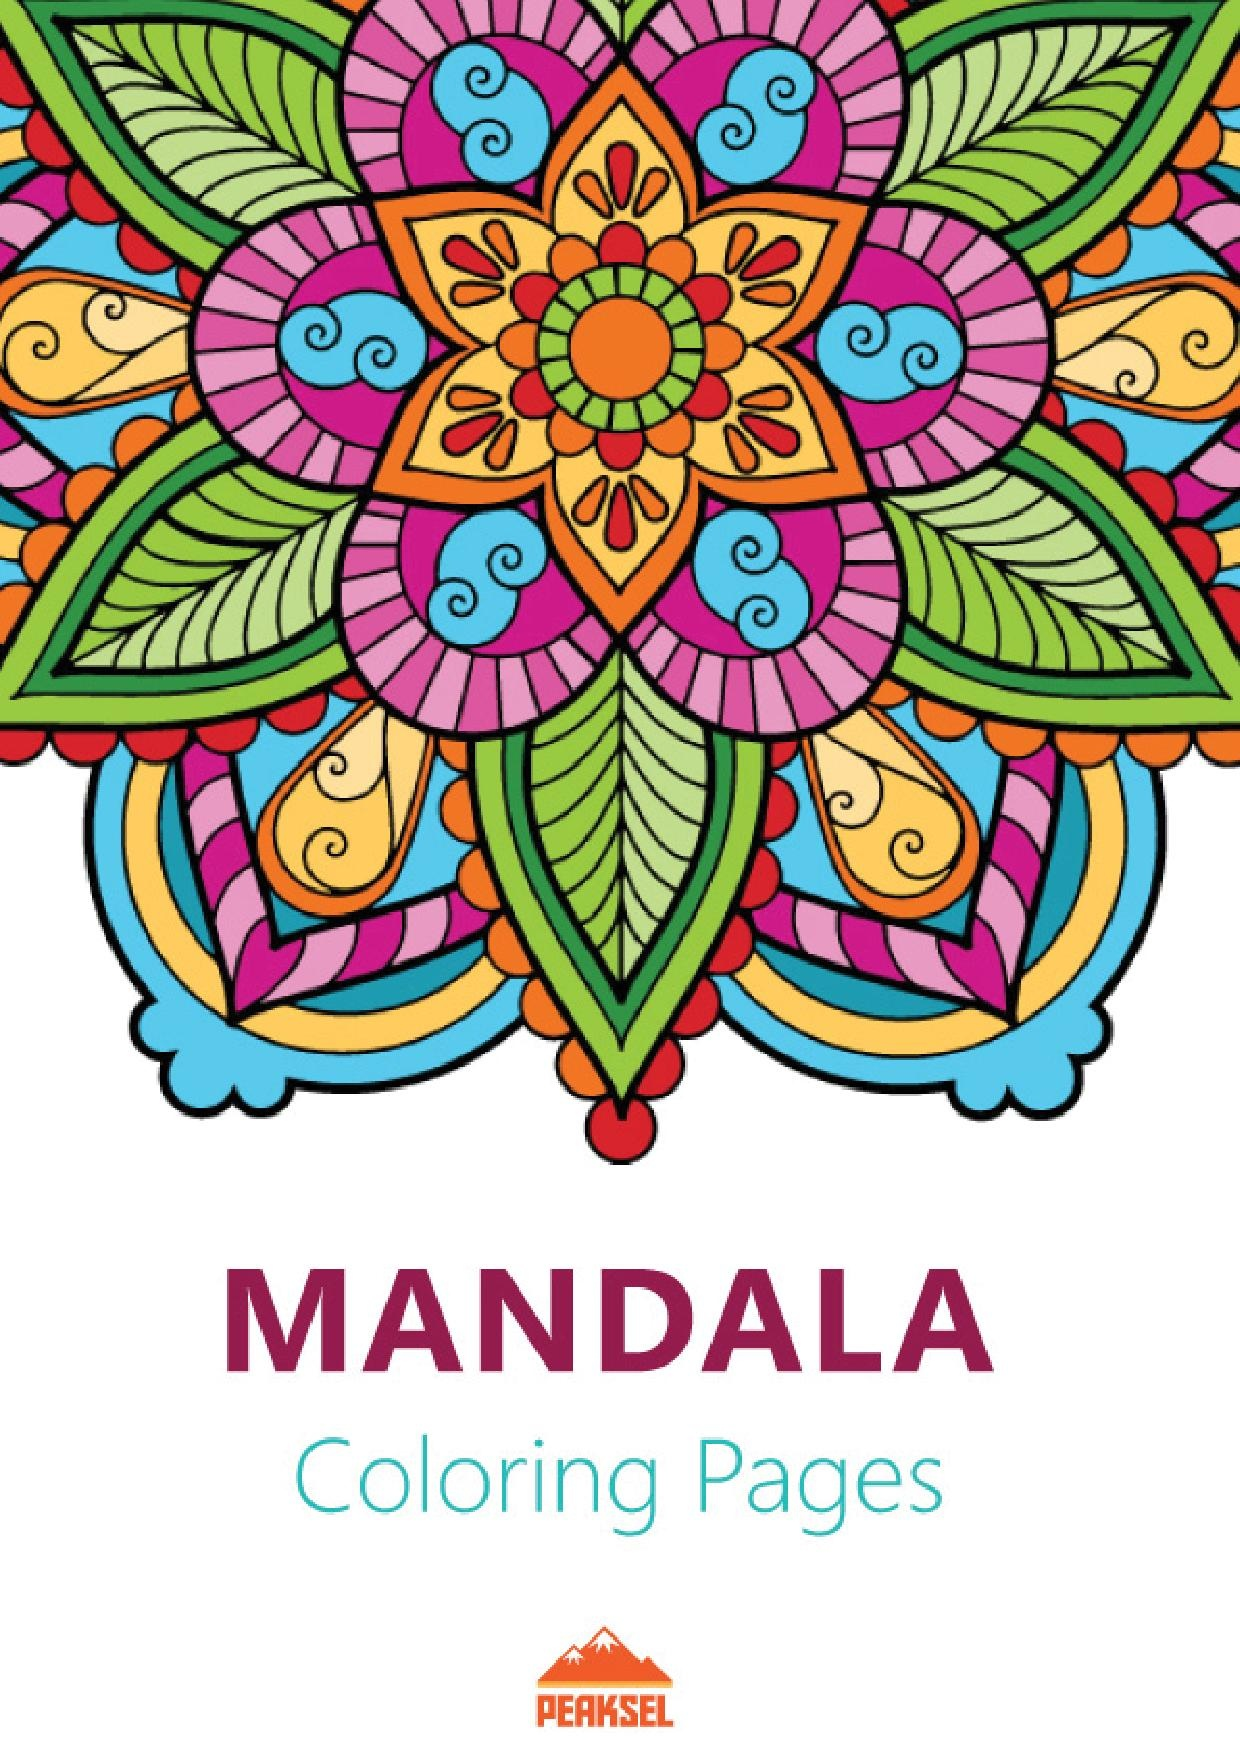 filemandala coloring pages for adults printable coloring bookpdf